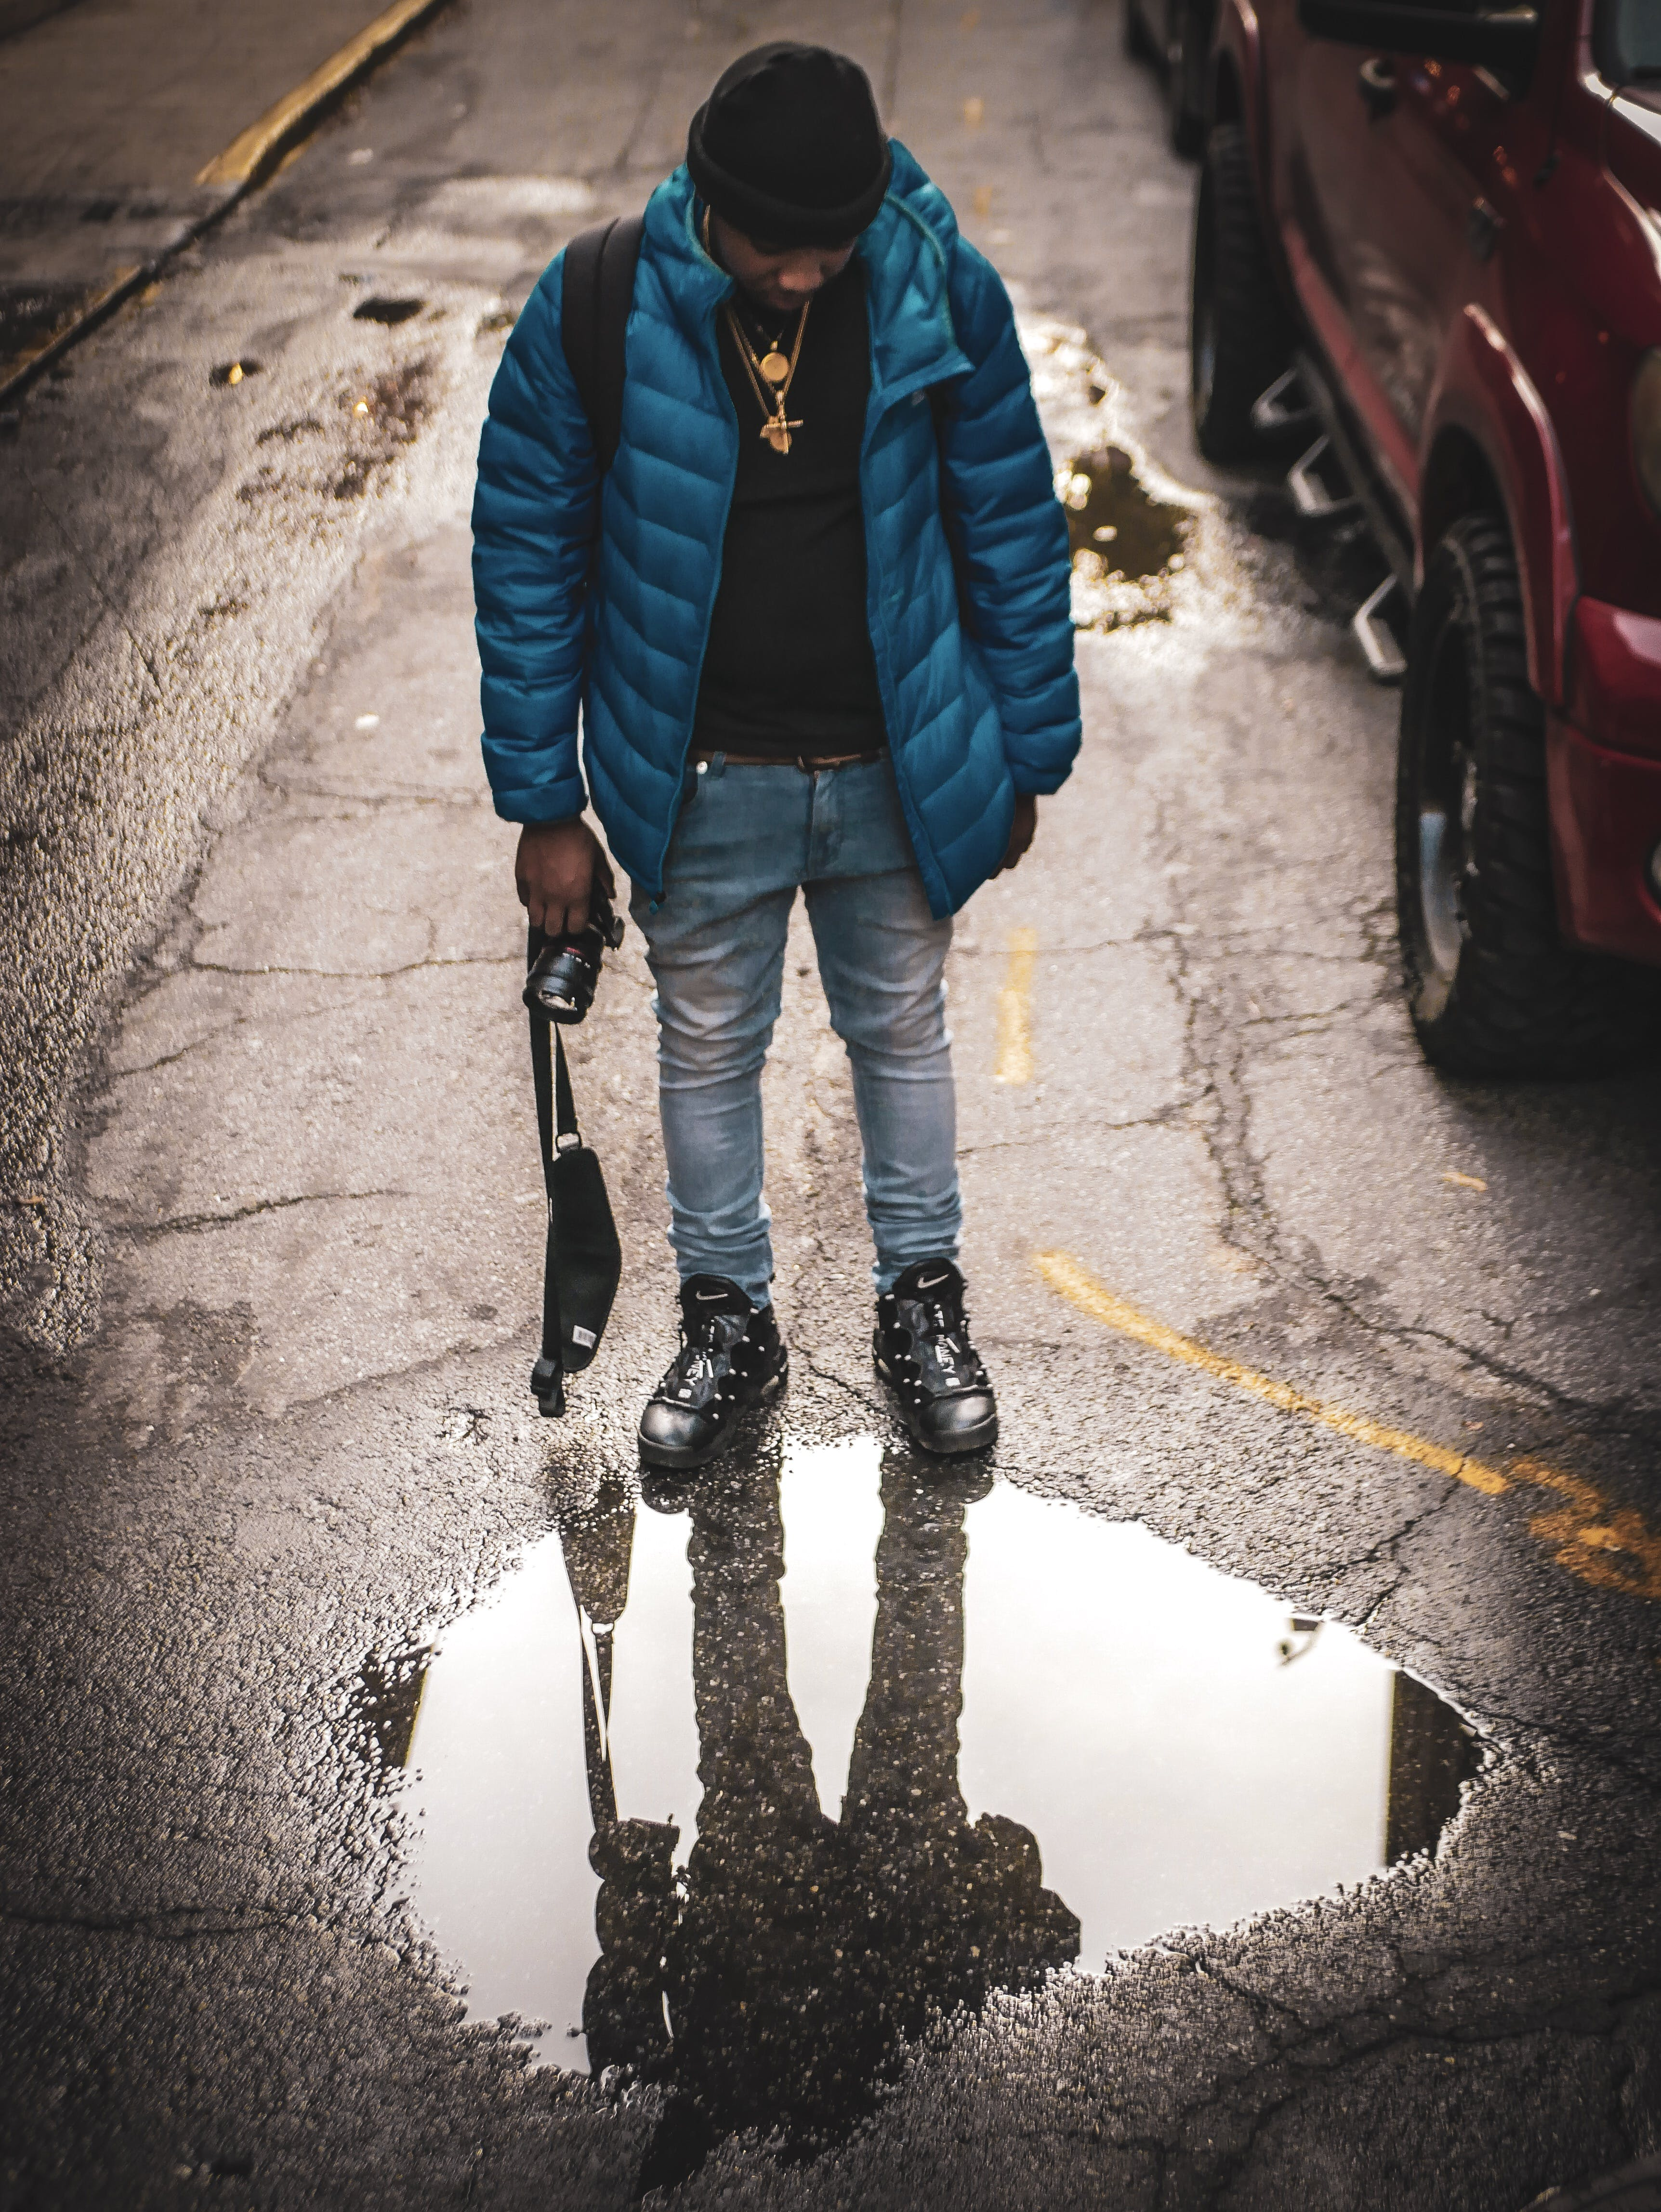 Man Looking on Puddle on Road